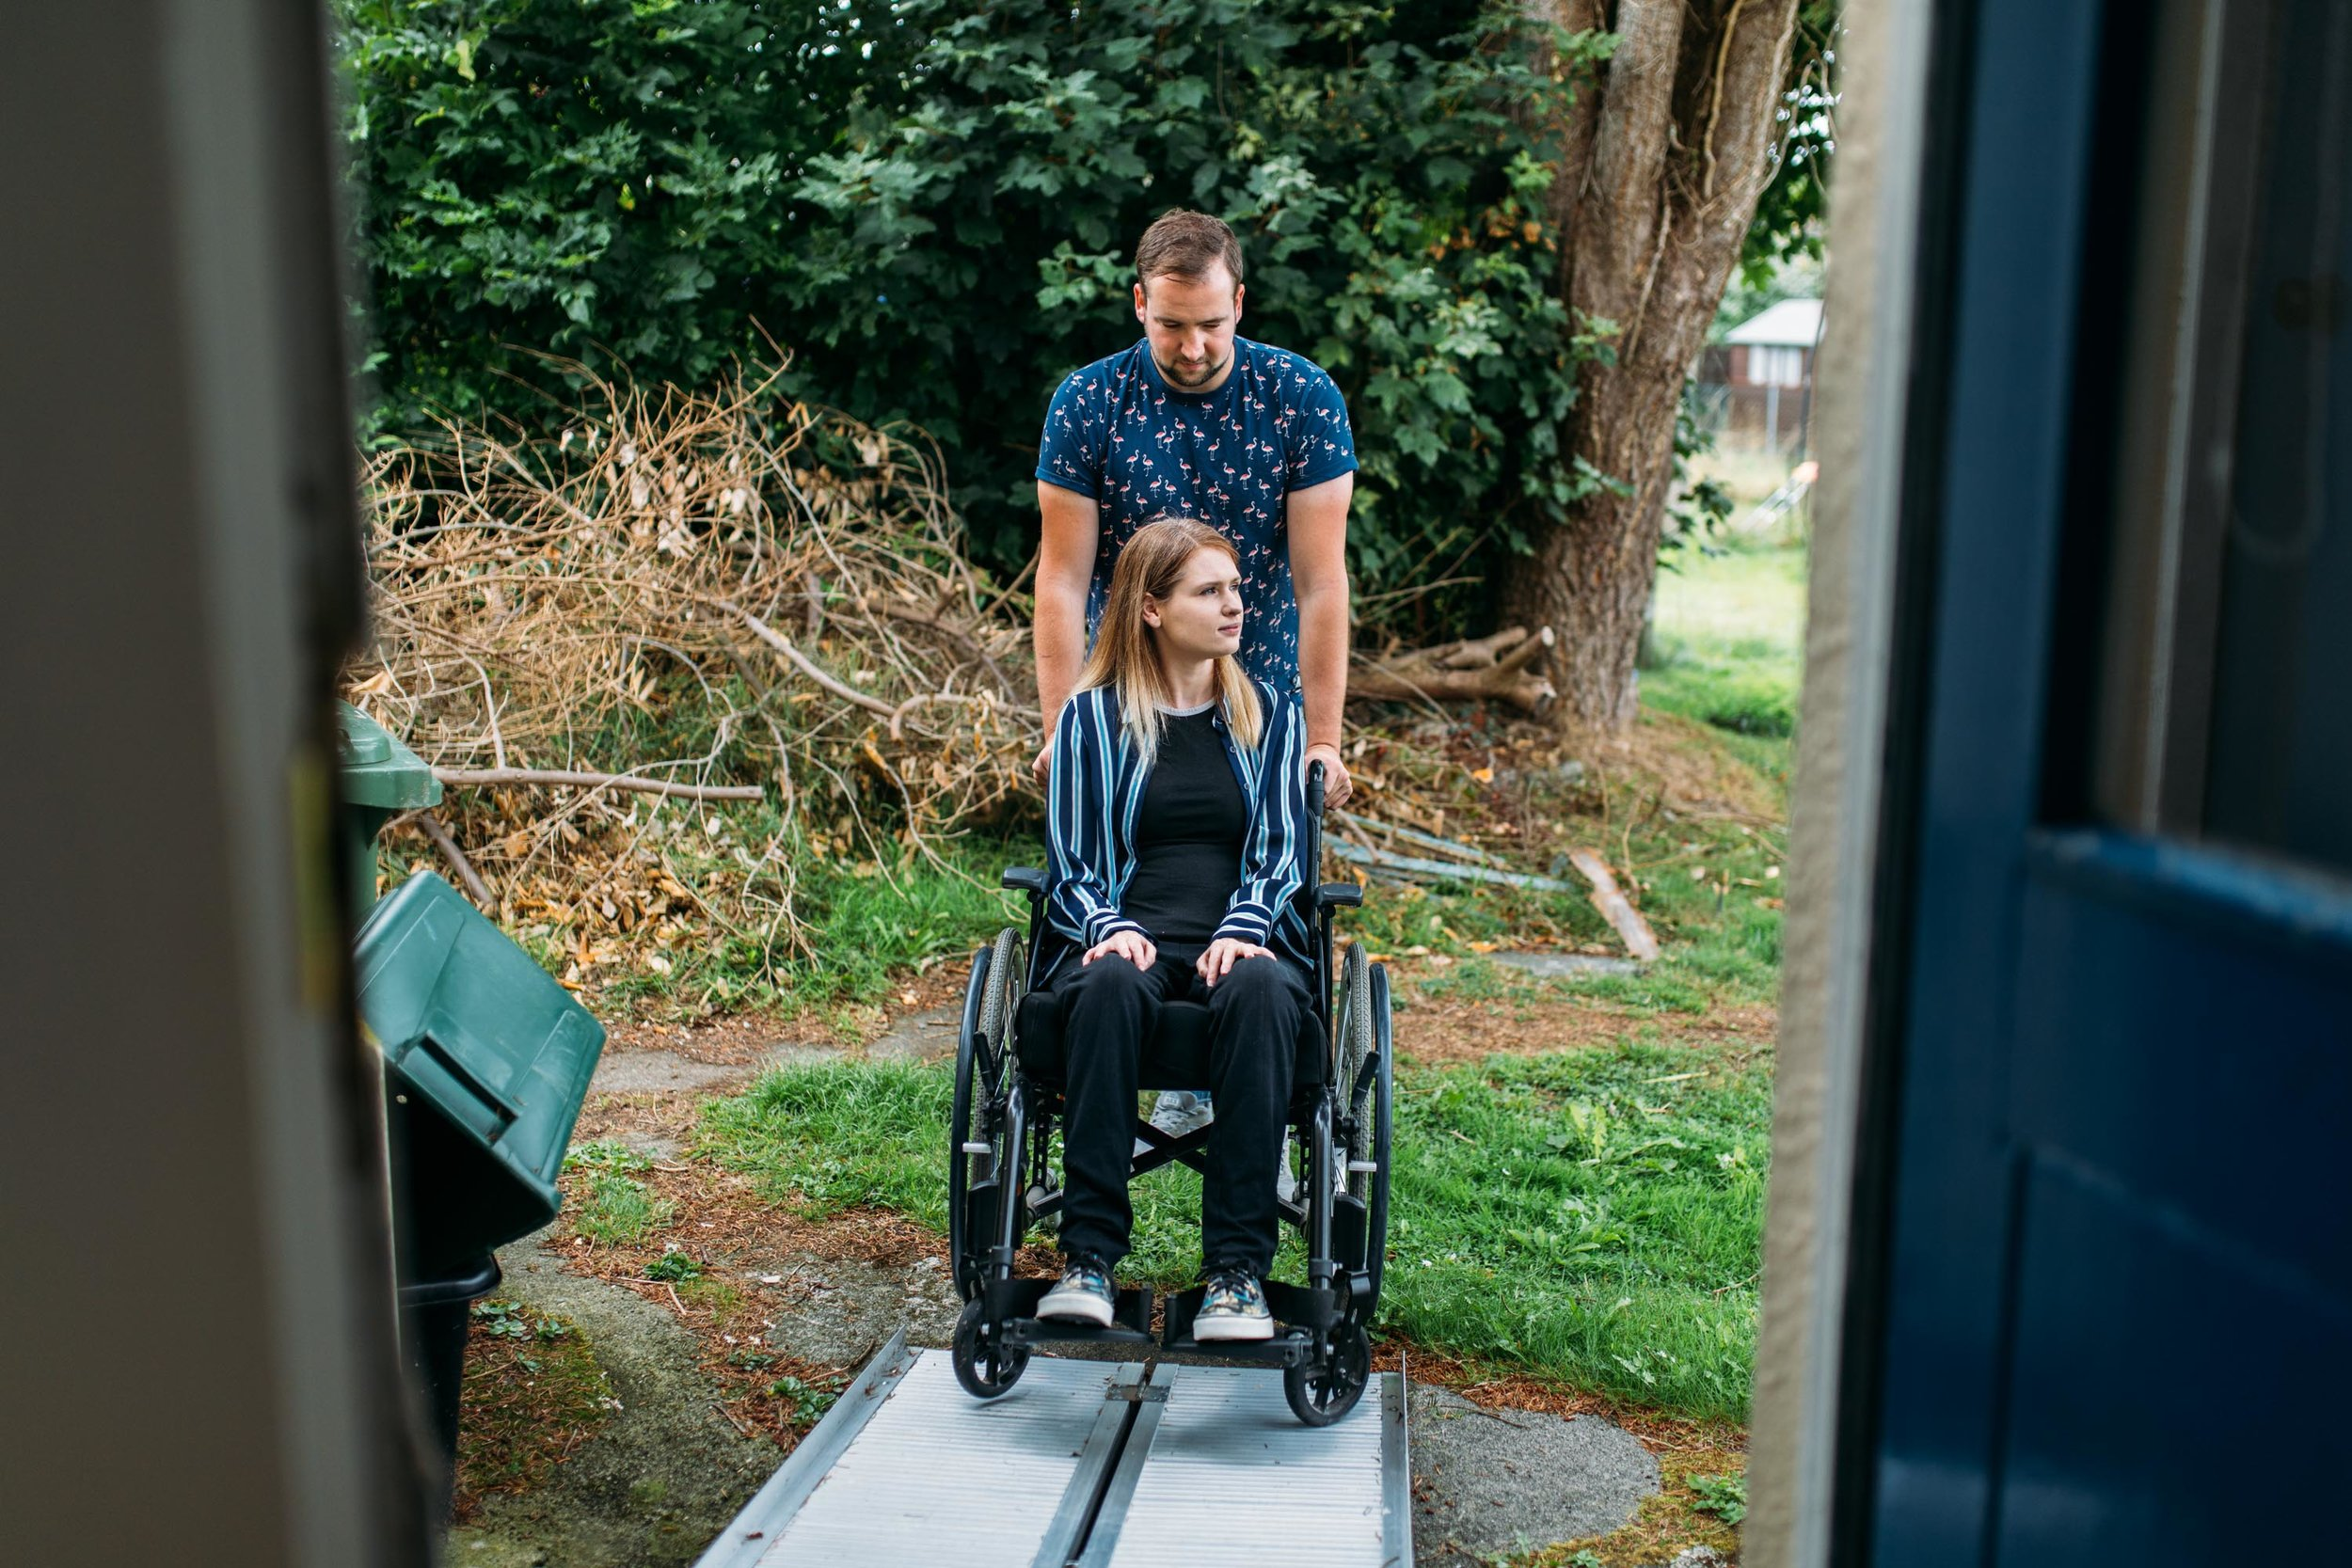 Kay Garner's partner Ryan Waters pushes her up the temporary ramp in the back garden of their council-provided home. She uses the ramp to get in and out of the house through the kitchen as she can not use the front door. They were forced to move out of their inaccessible previous home after Kay's spinal injury. Penzance, Cornwall. 20th Aug 2018.